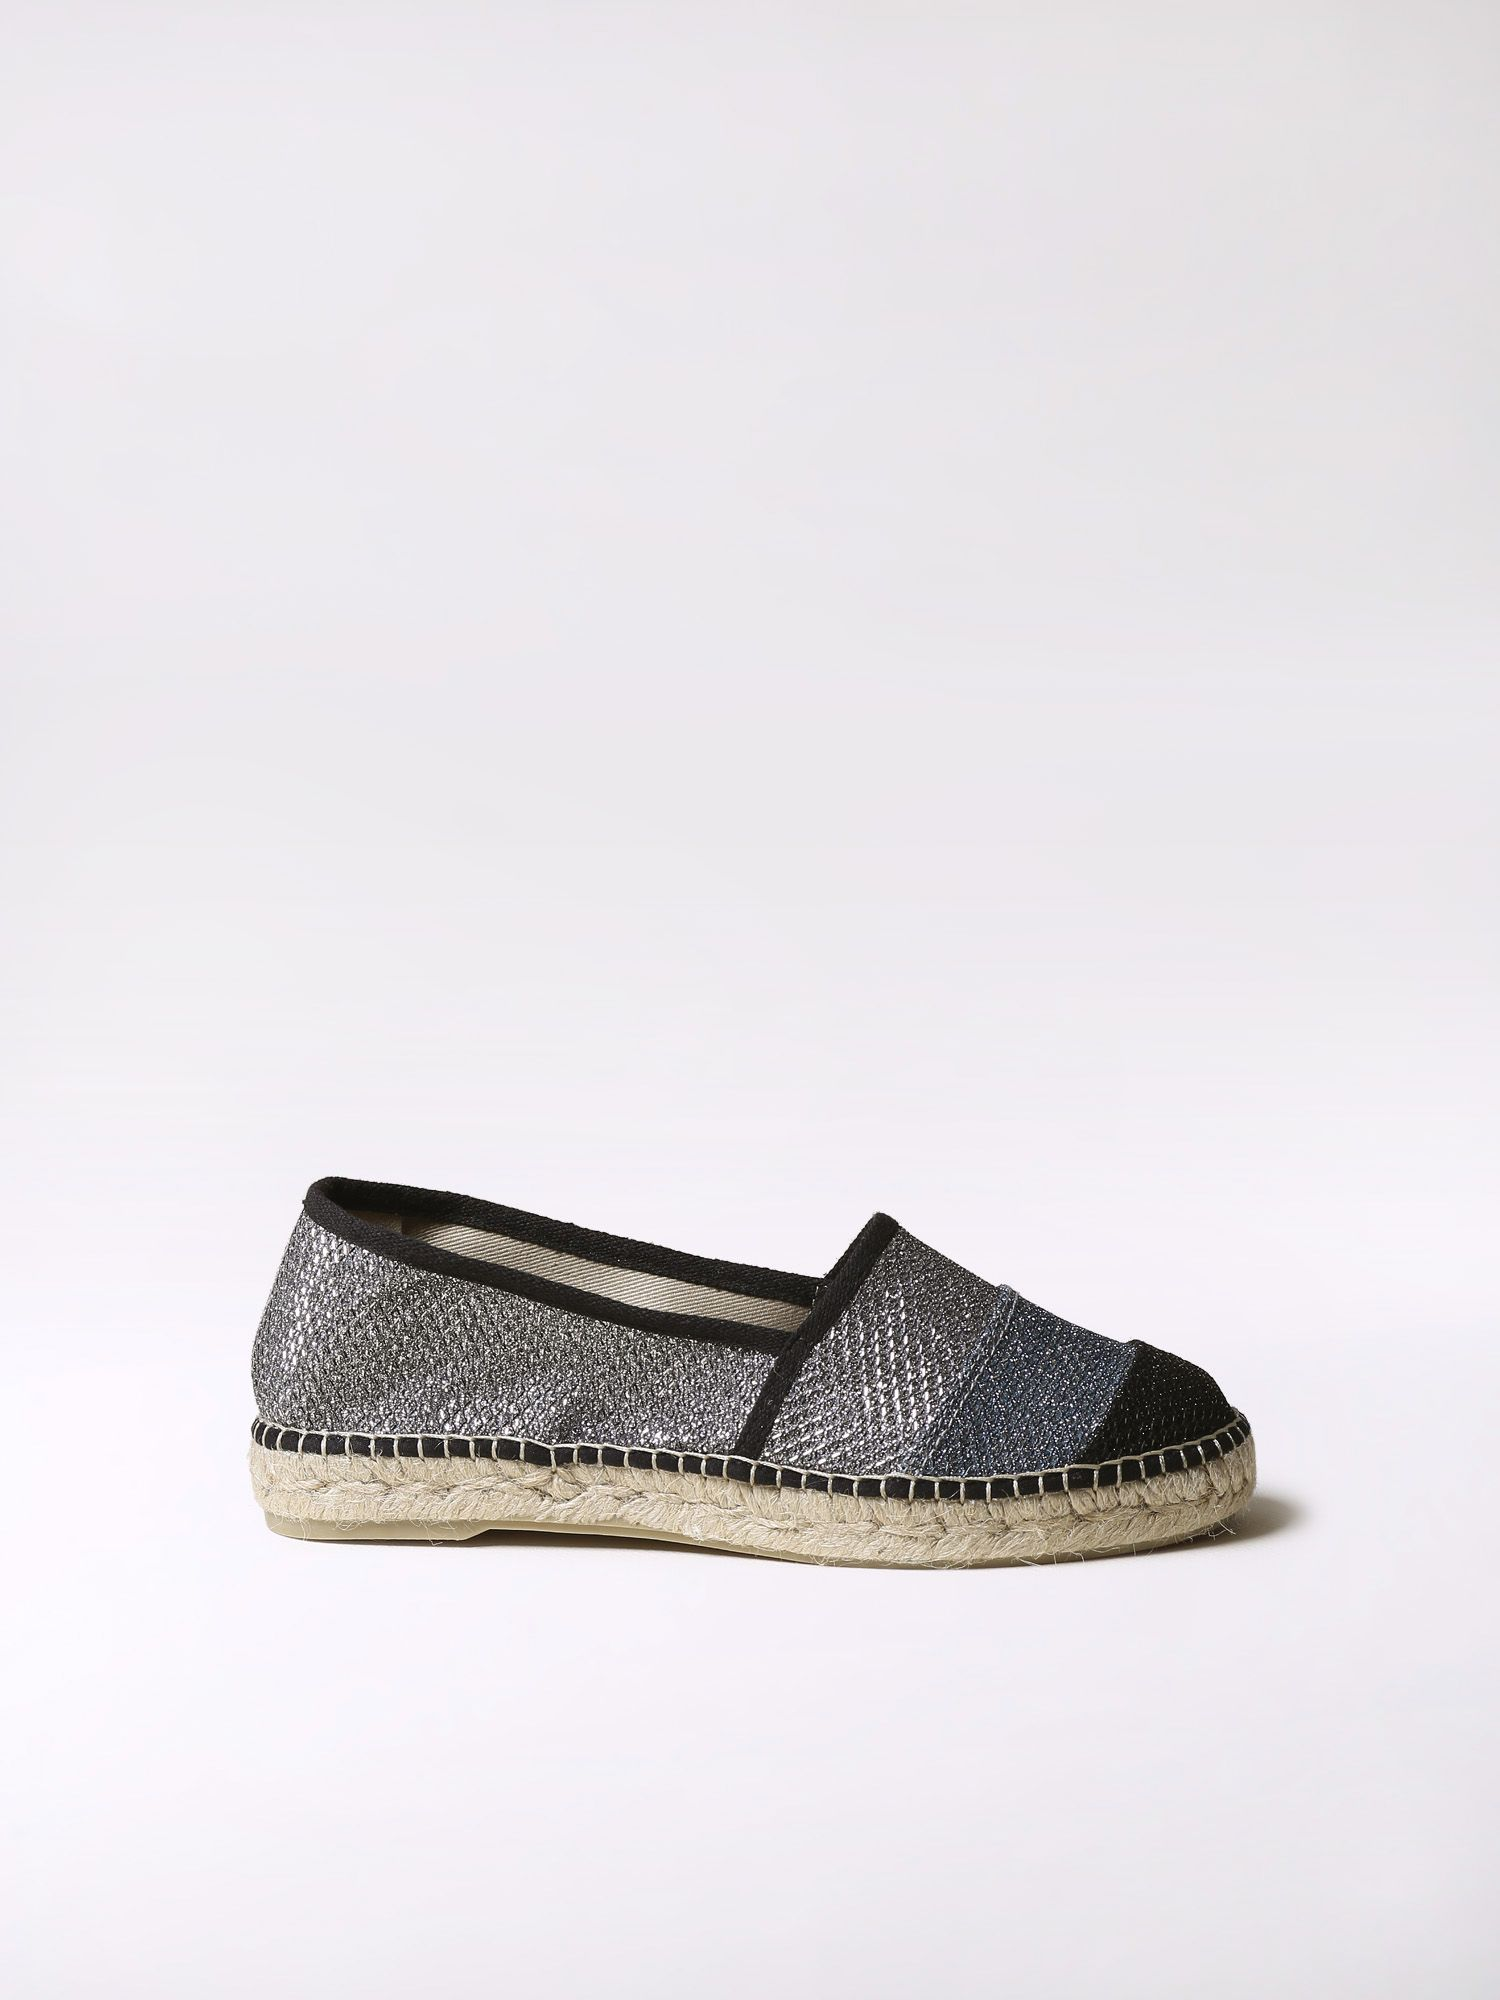 Tricolor espadrille flats - ROMY-S